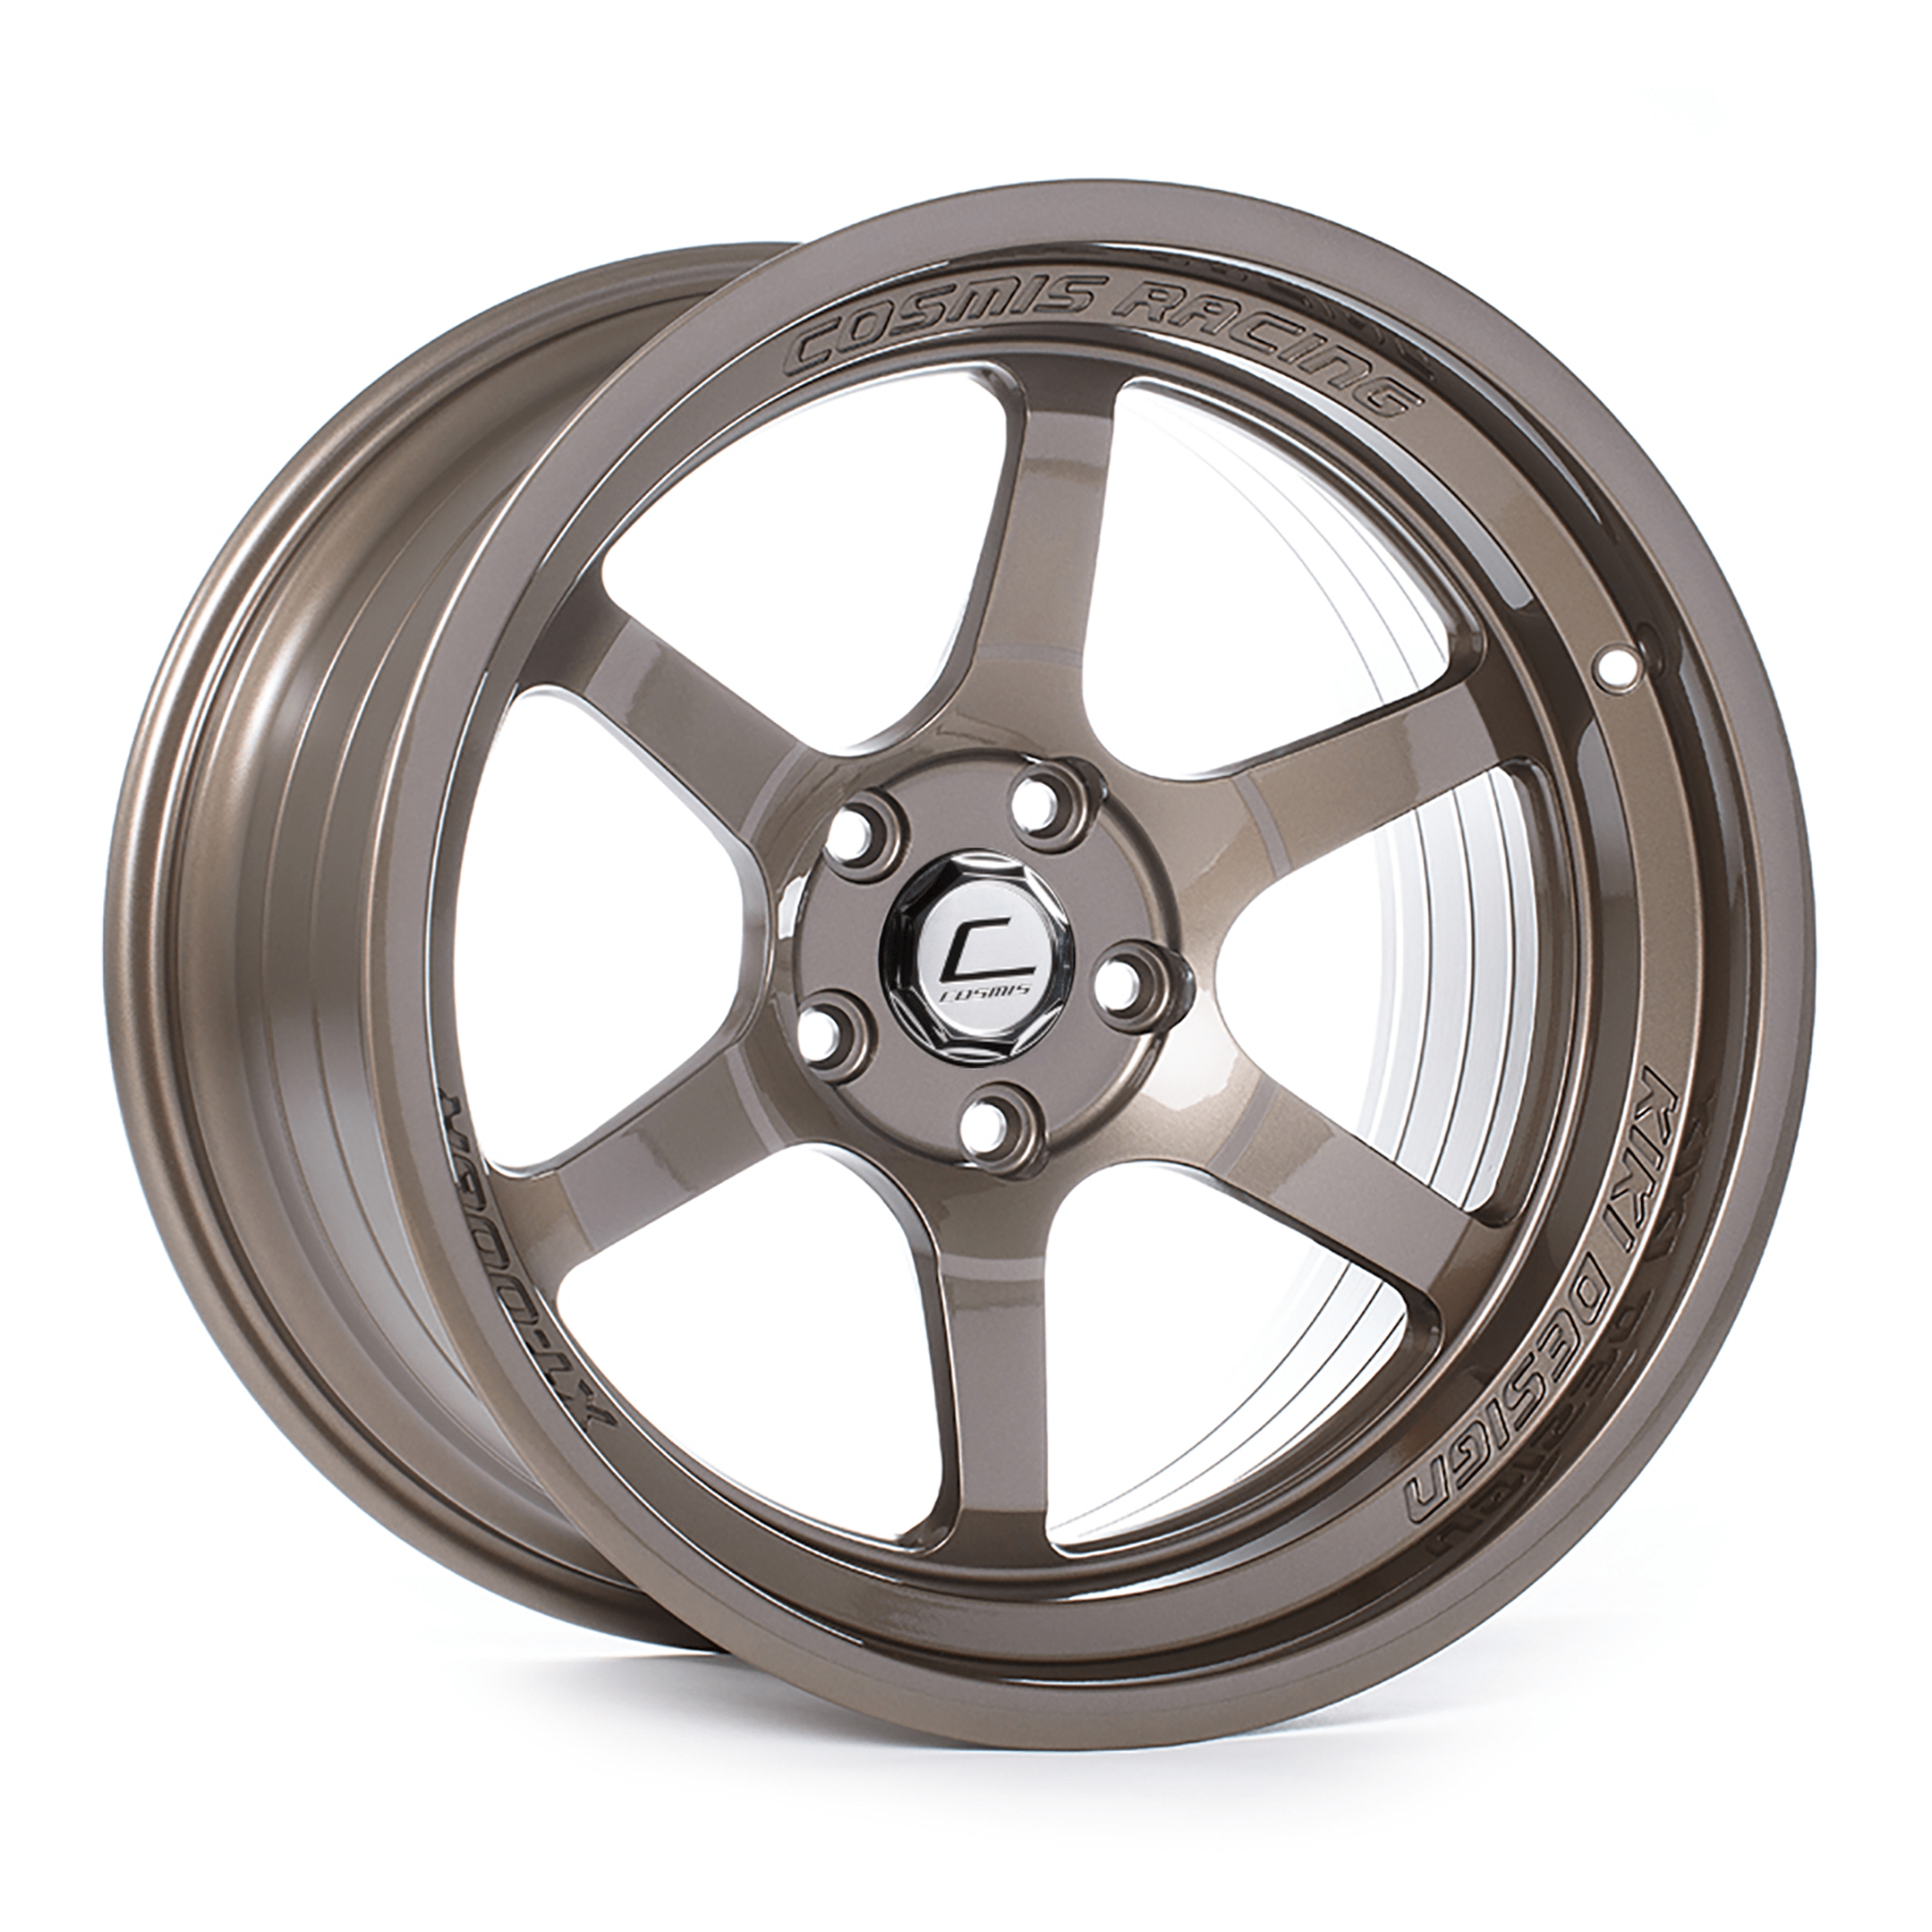 Cosmis Racing XT-006R 18x11 +8mm 5x114.3 Bronze